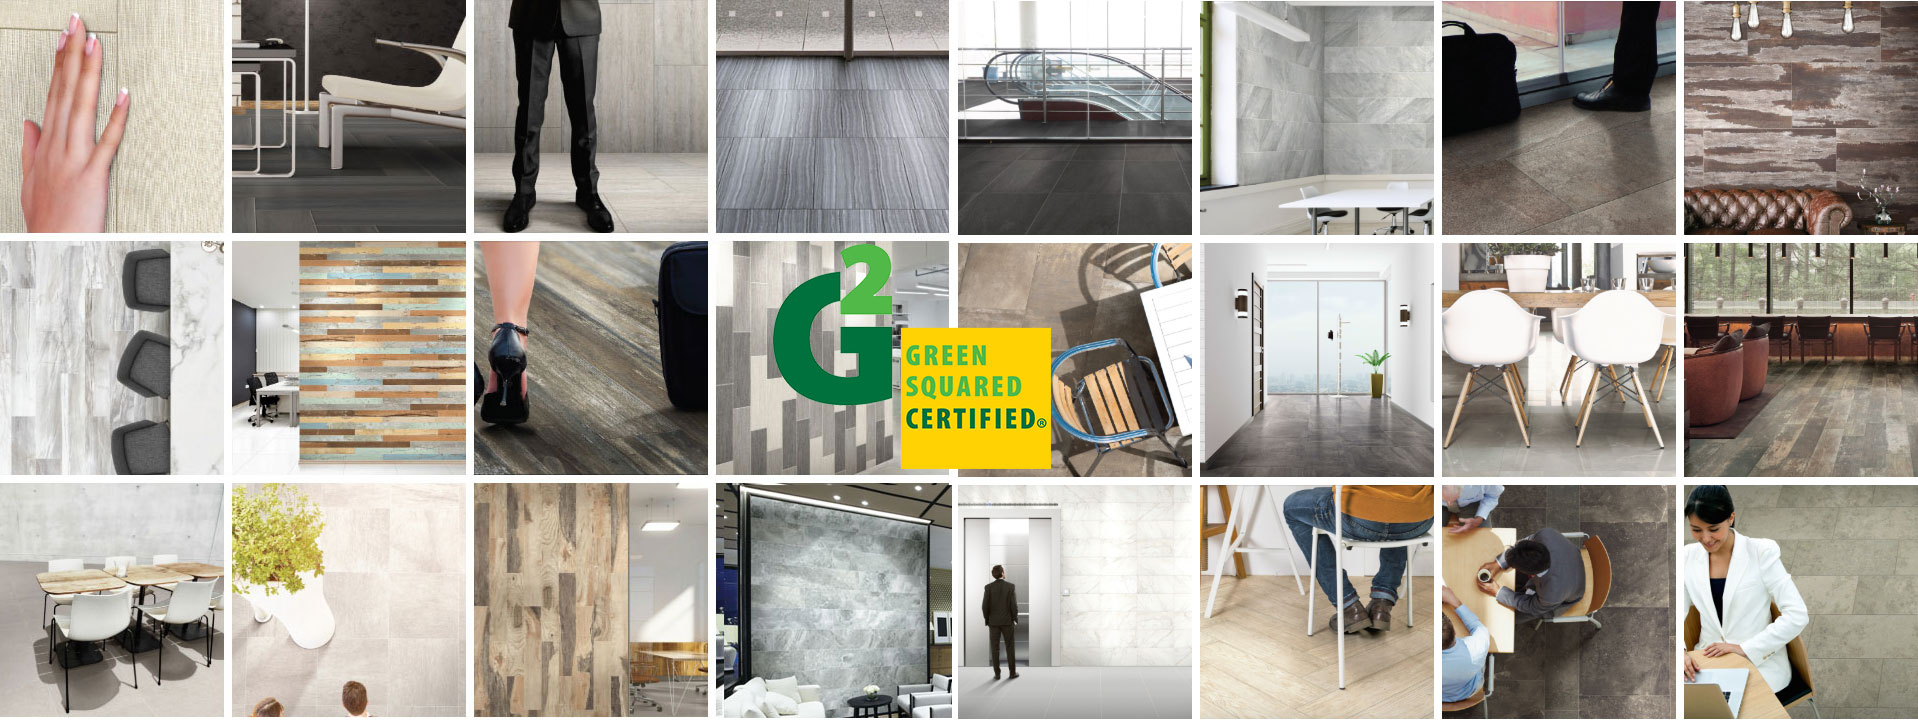 green-squared-porcelain-tile-products-by-GIO